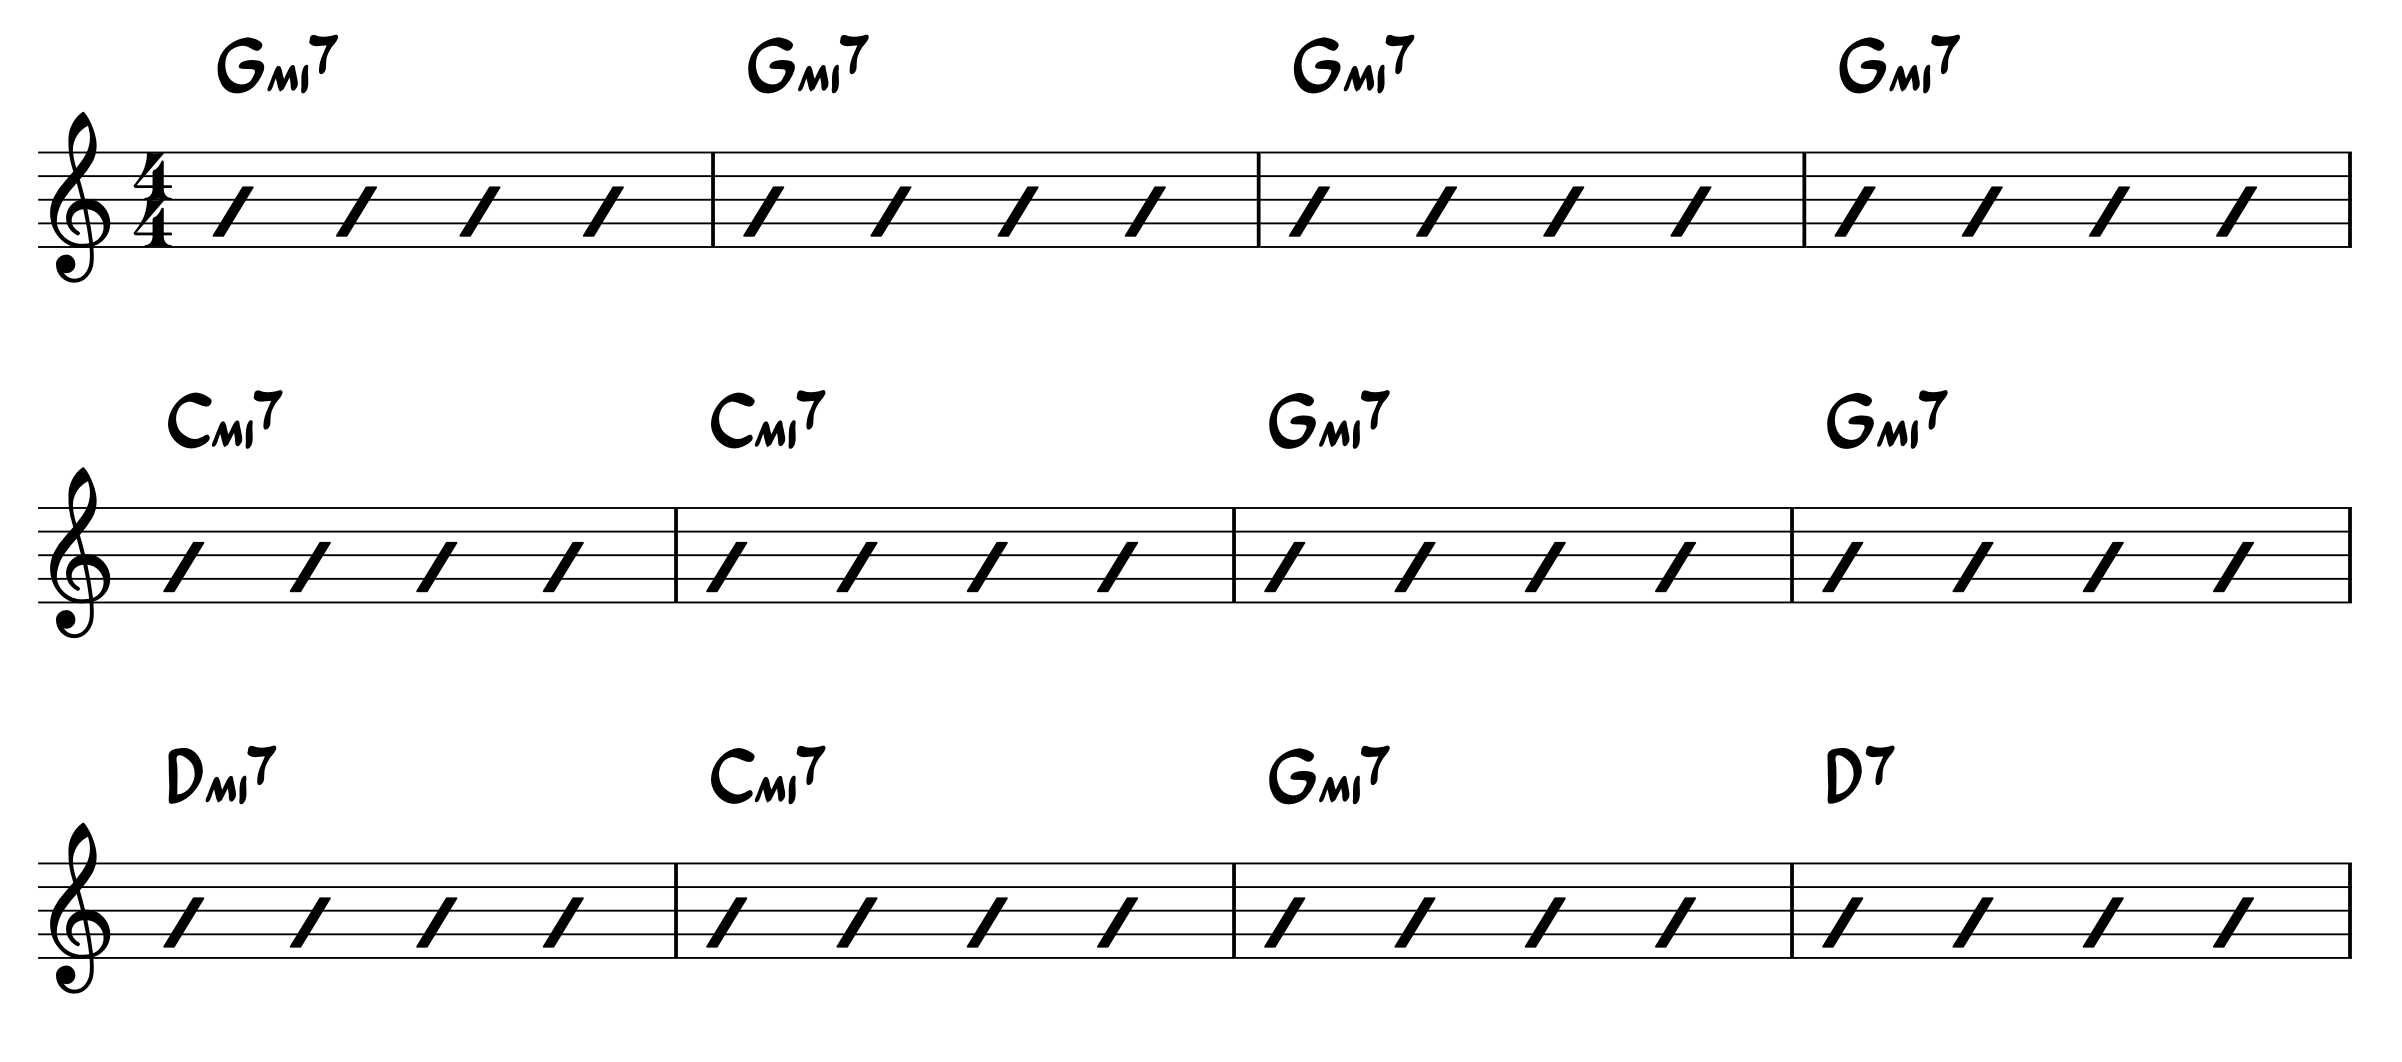 Chart for G minor blues progression Form 1